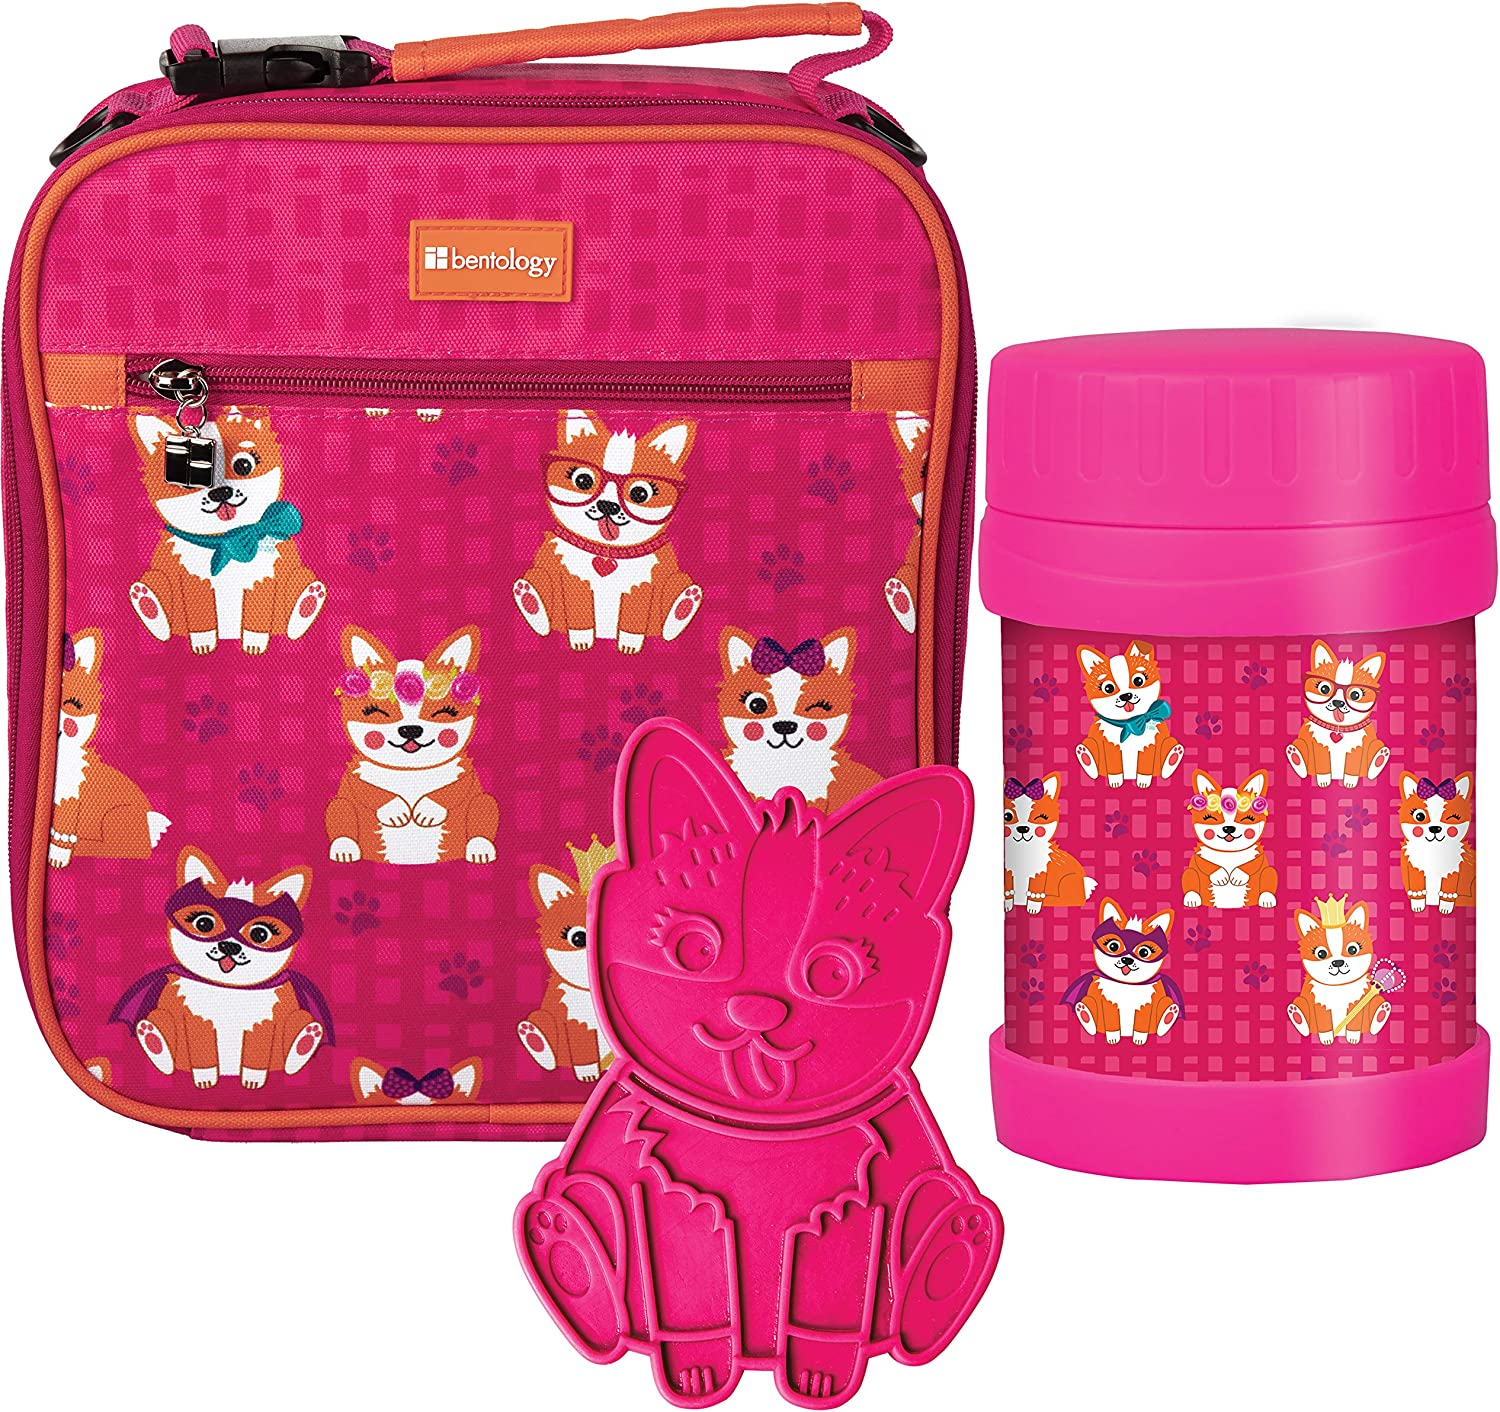 Kids Complete Lunch Box Tote Kit: Insulated Sleeve w Convertible